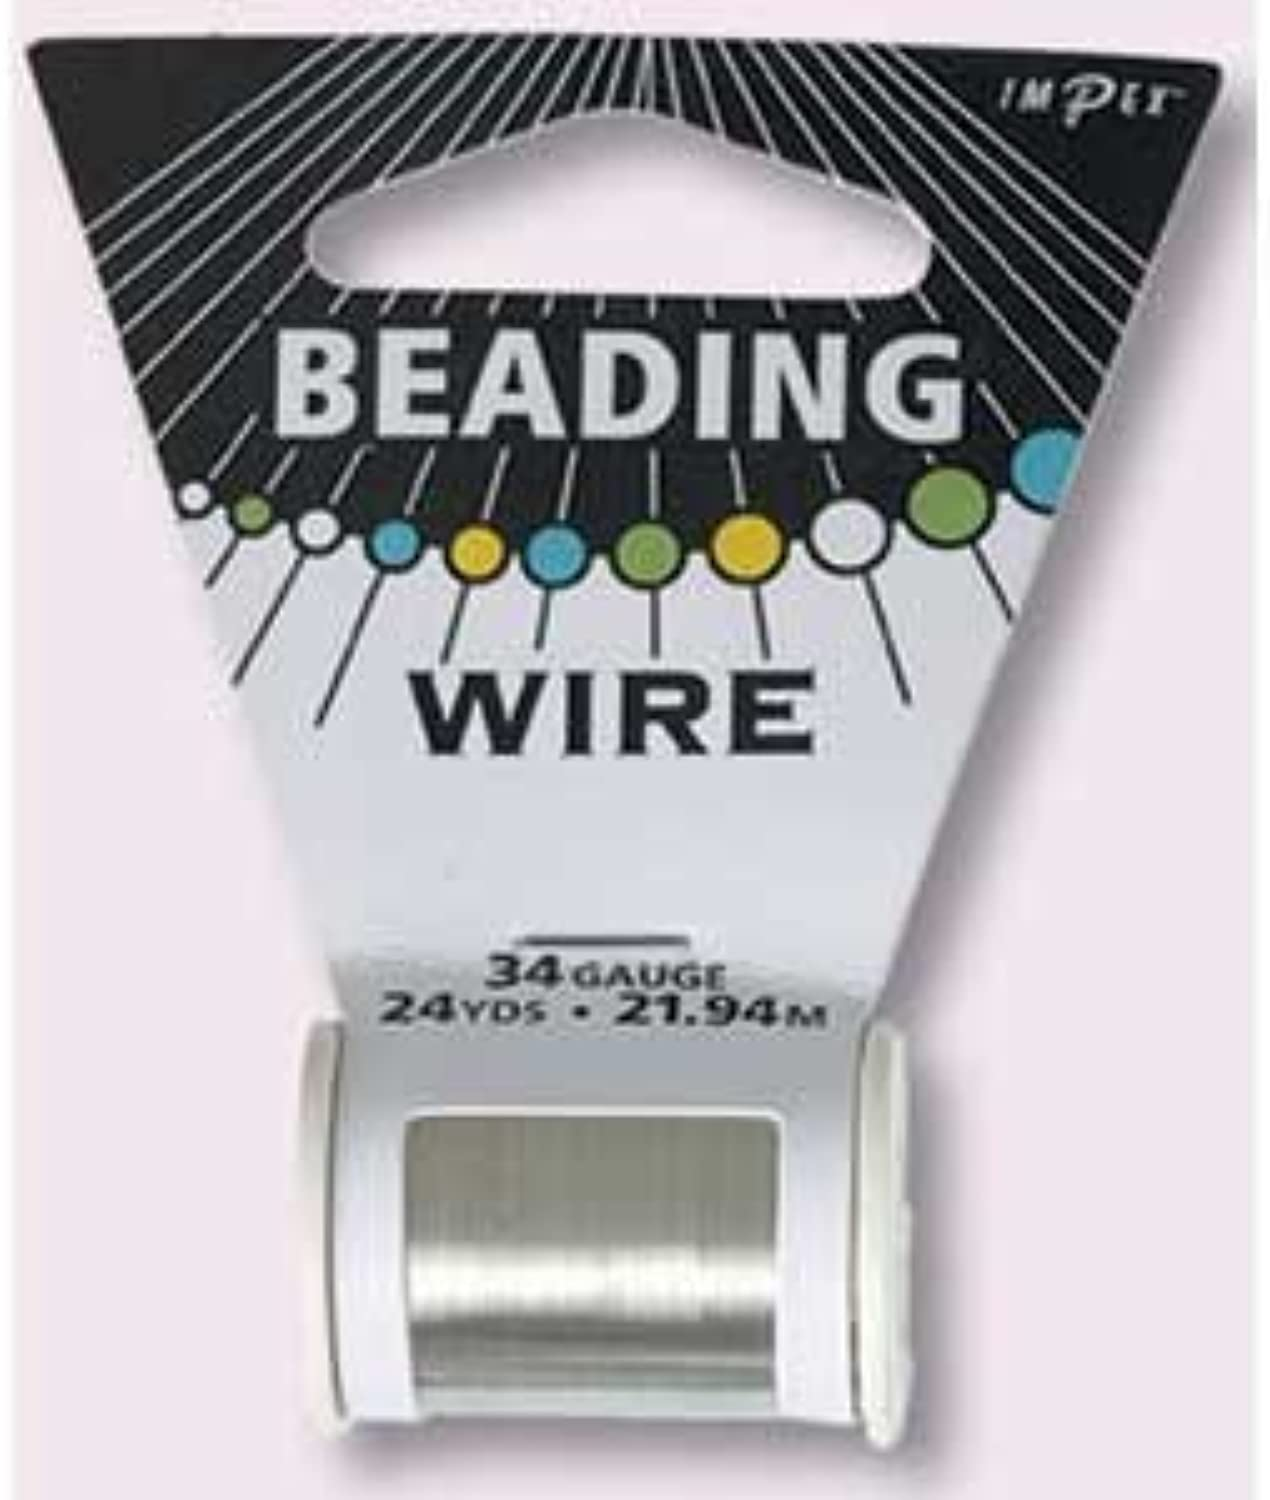 Beading Wire, 34 Gauge - Silver by Impex